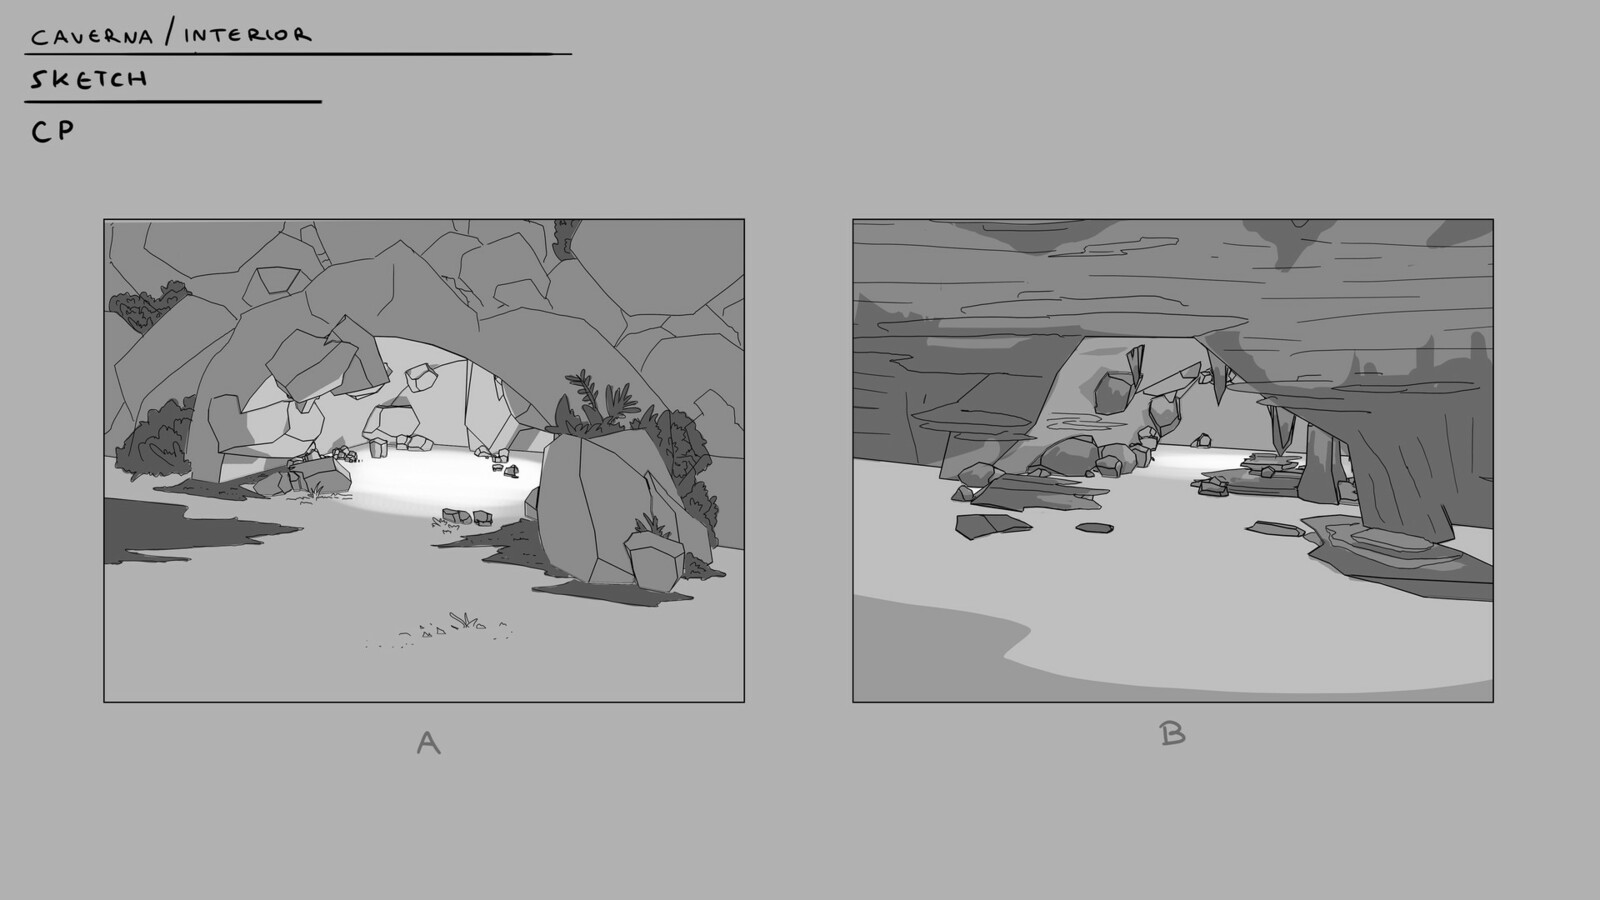 Designs for Cave